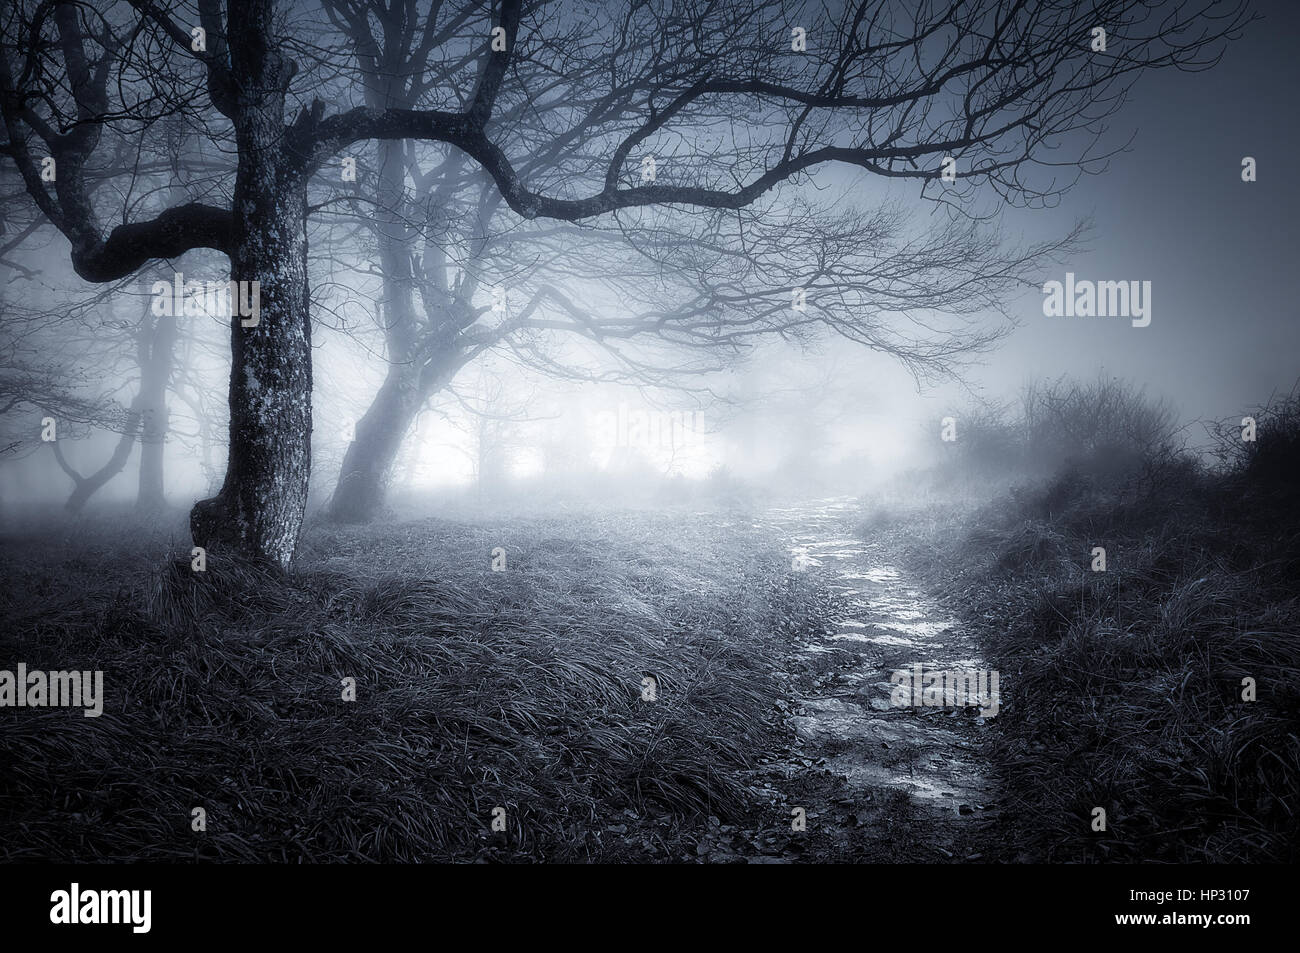 path in a dark and scary forest - Stock Image